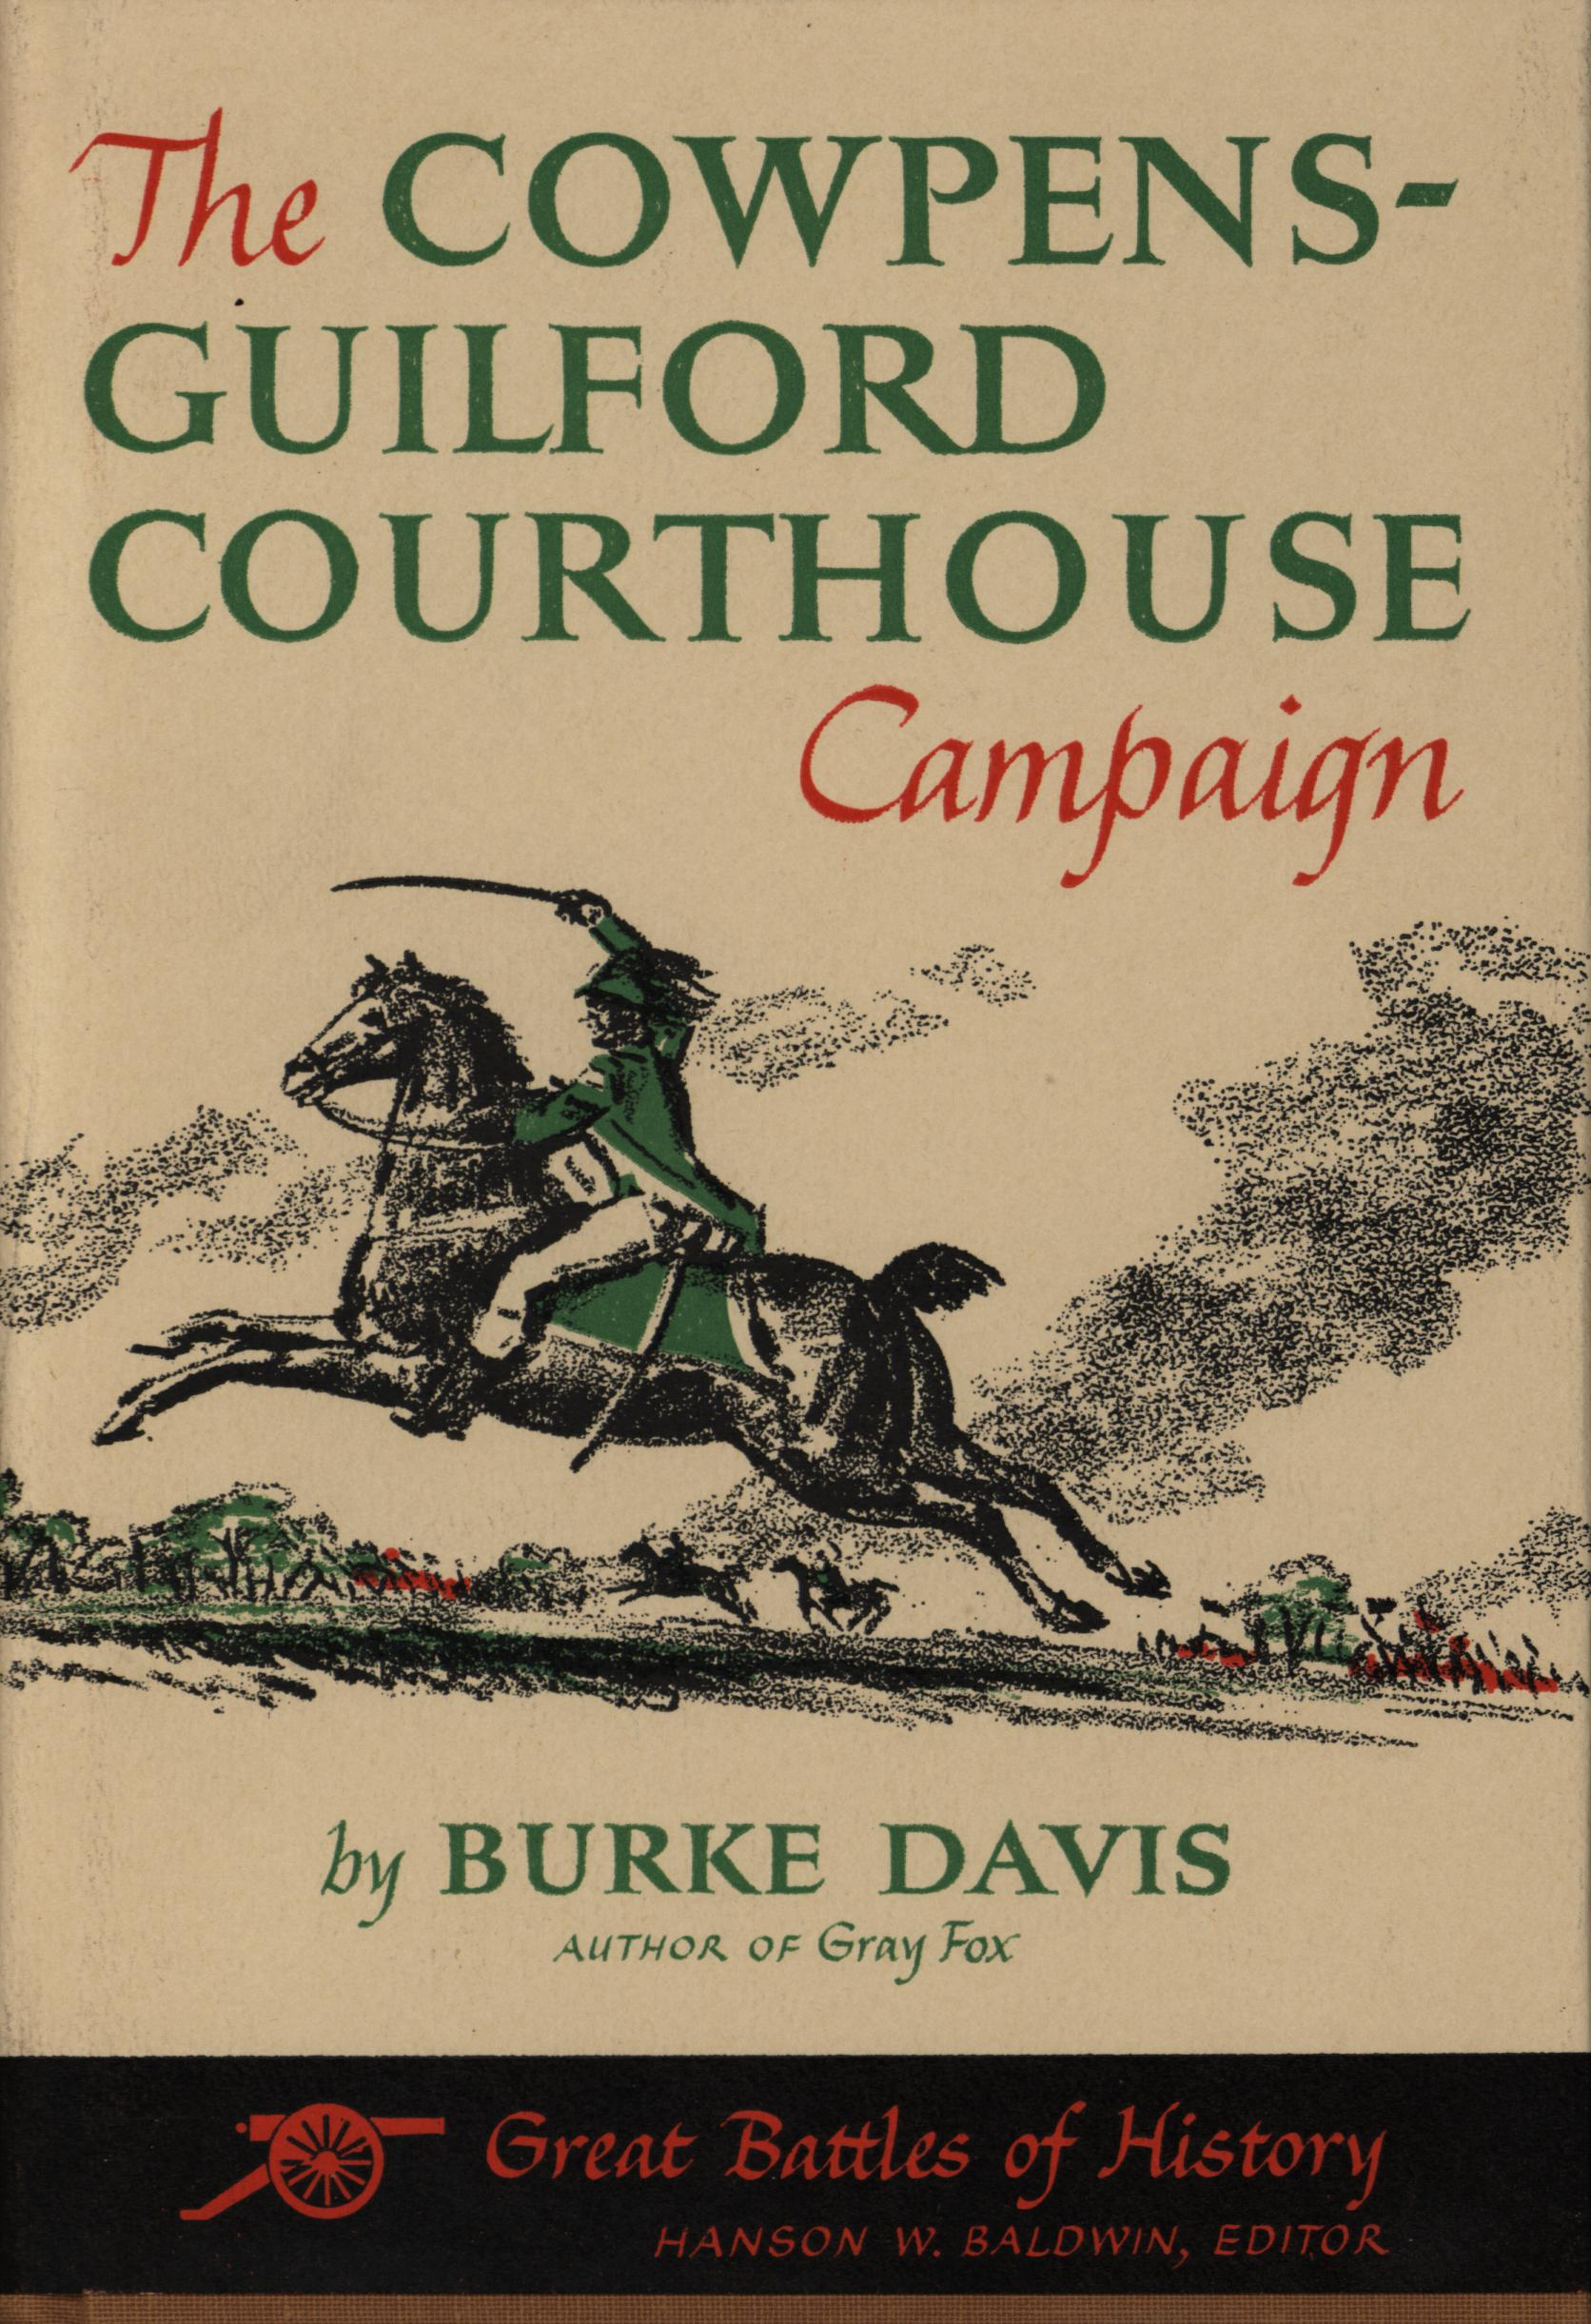 Image for The Cowpens-Guilford Courthouse Campaign (First Edition)